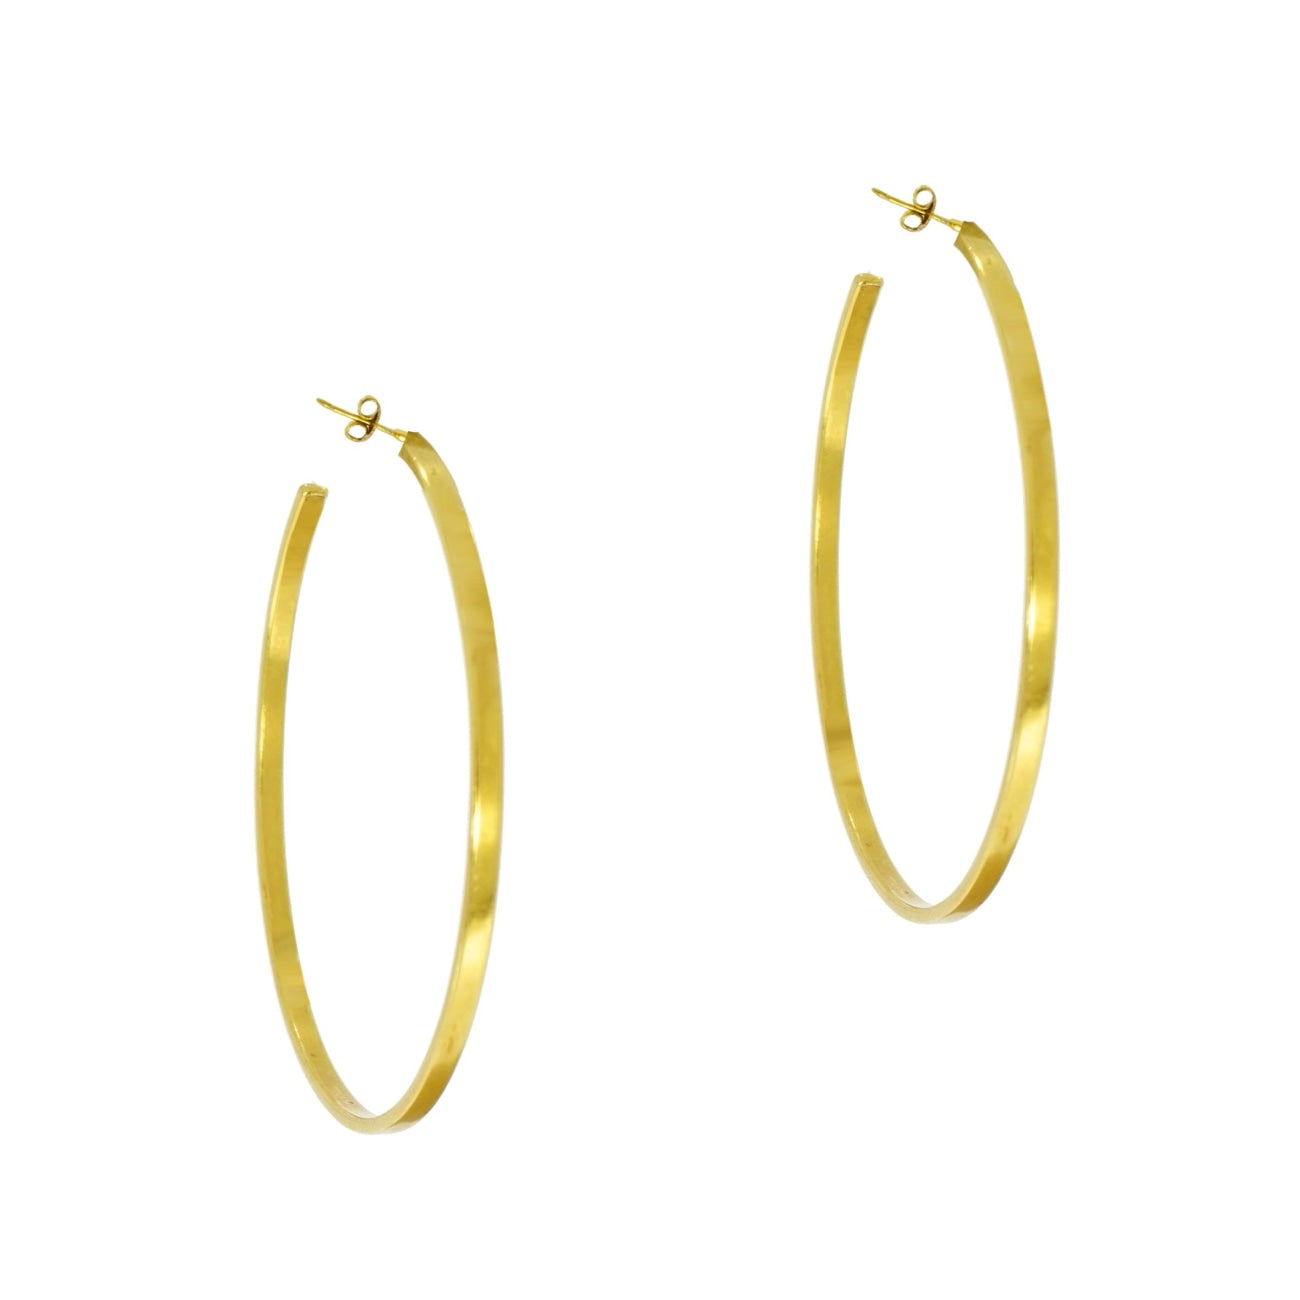 Estate Jewelry Estate Jewelry - Caroline Ellen 20K Yellow Gold Hoops | Manfredi Jewels